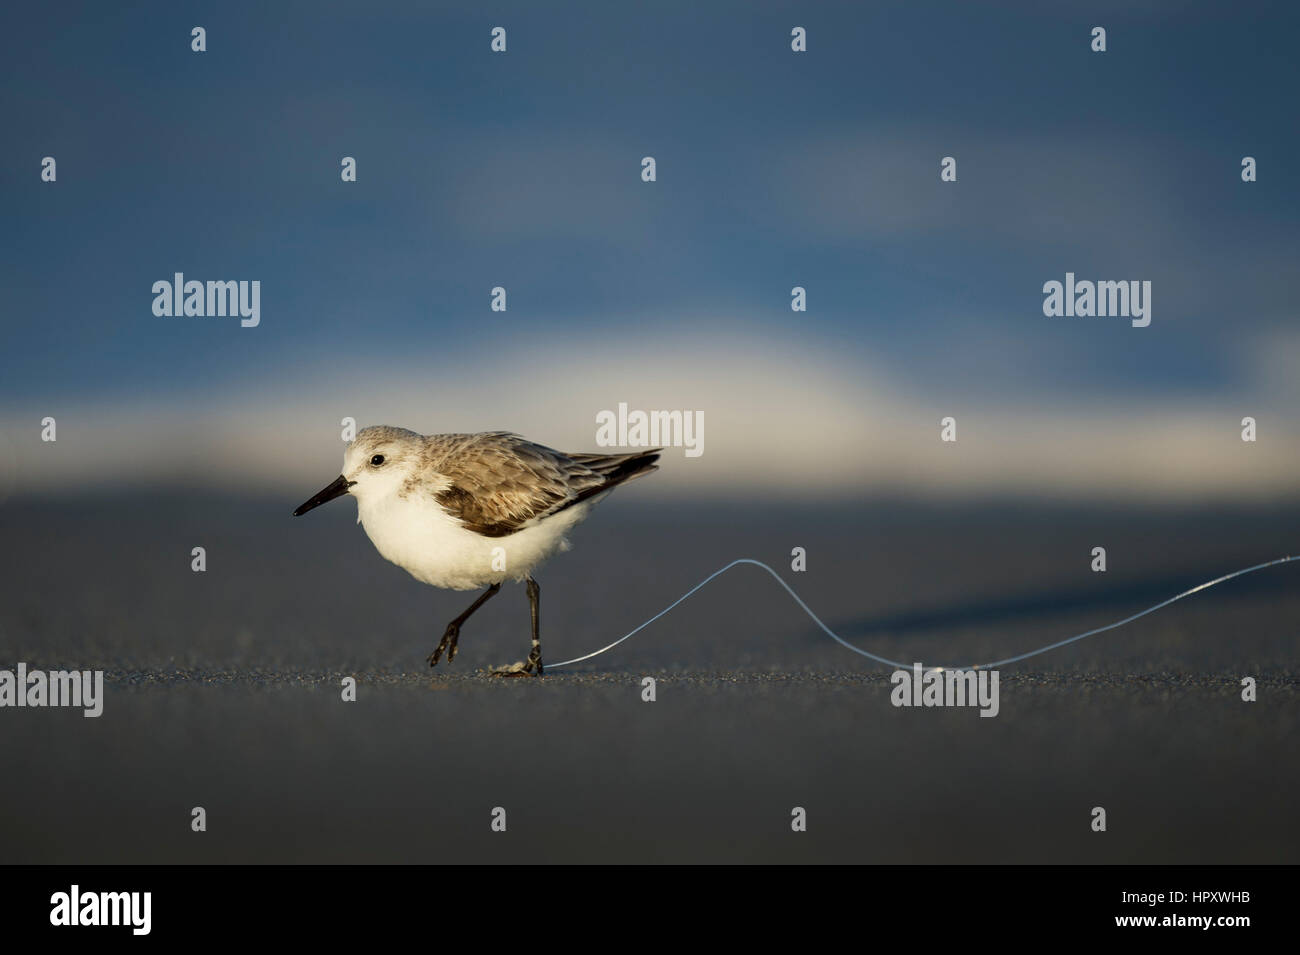 An unfortunate Sanderling has fishing line tangled around its foot as it runs on a dark sandy beach in the late - Stock Image